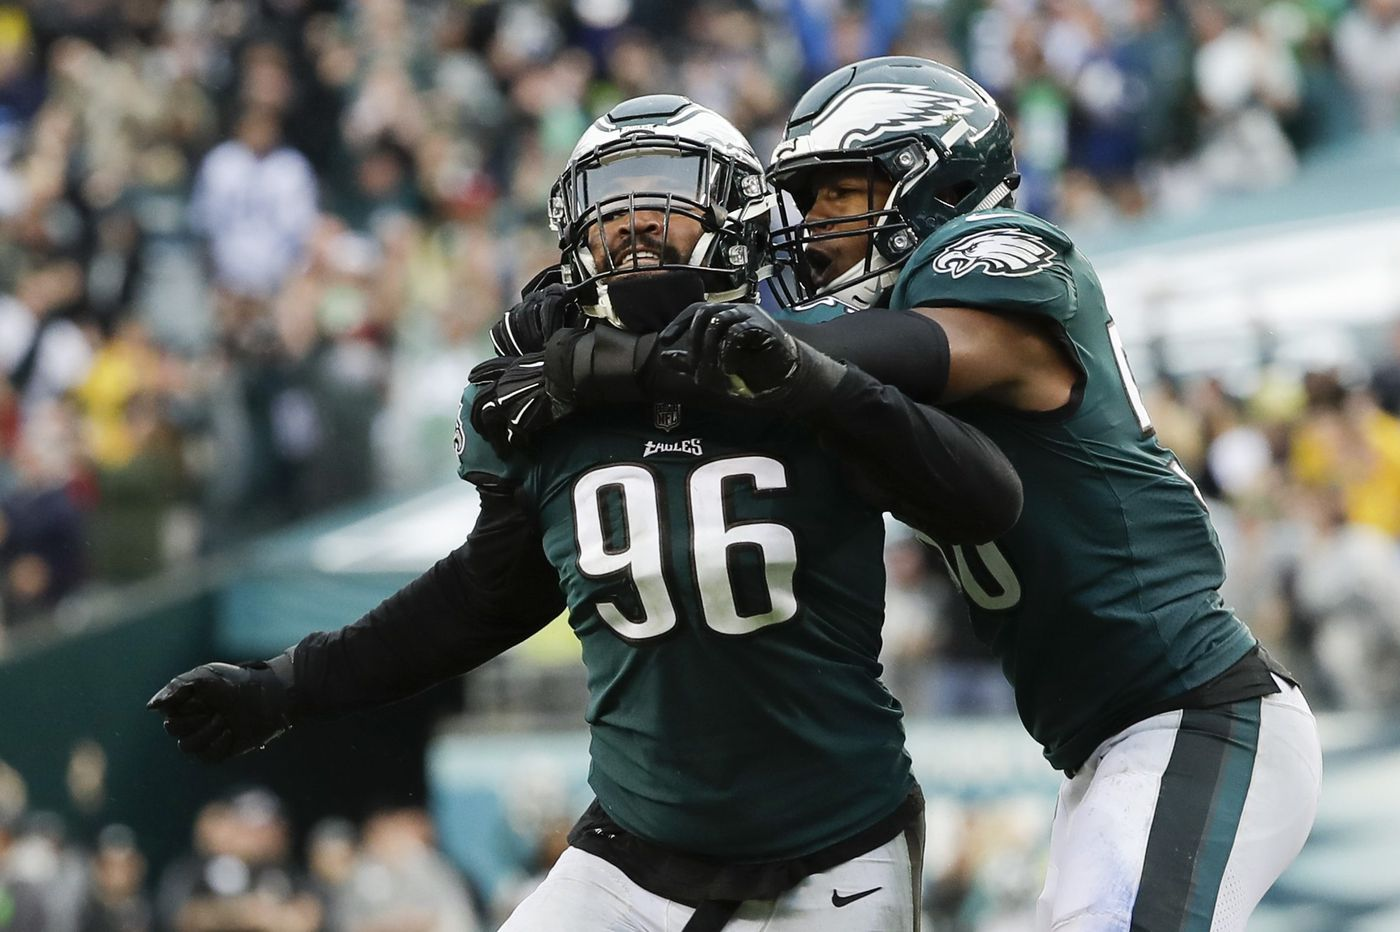 Eagles-Colts: What we learned about Carson Wentz, the running backs, and more